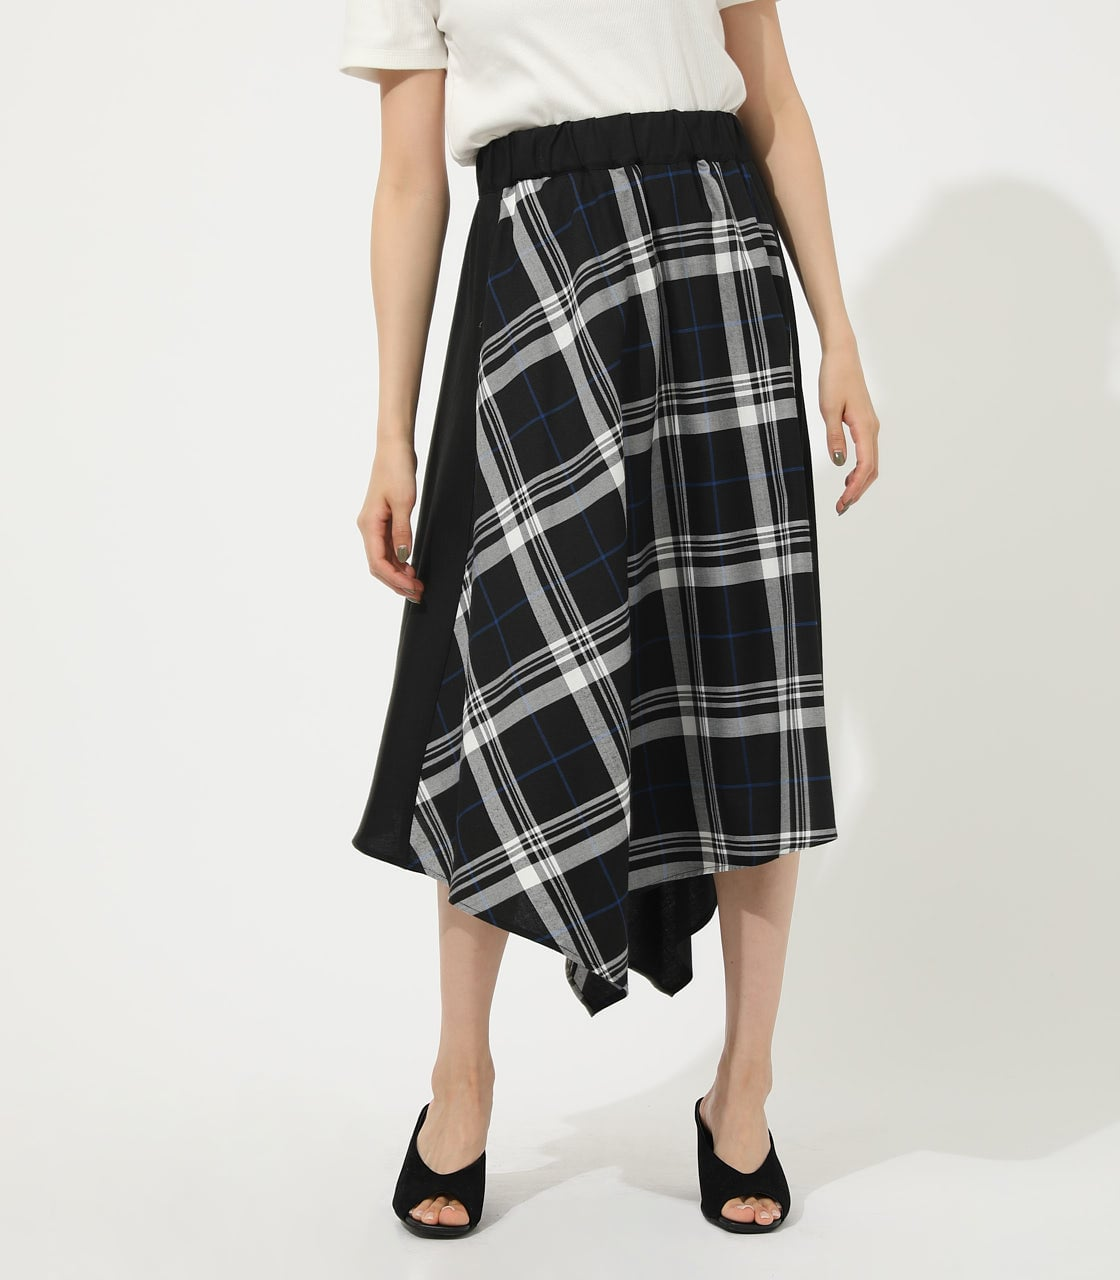 【AZUL BY MOUSSY】CHECK ASYMMETRY PATTERN SKIRT 詳細画像 柄BLK 1